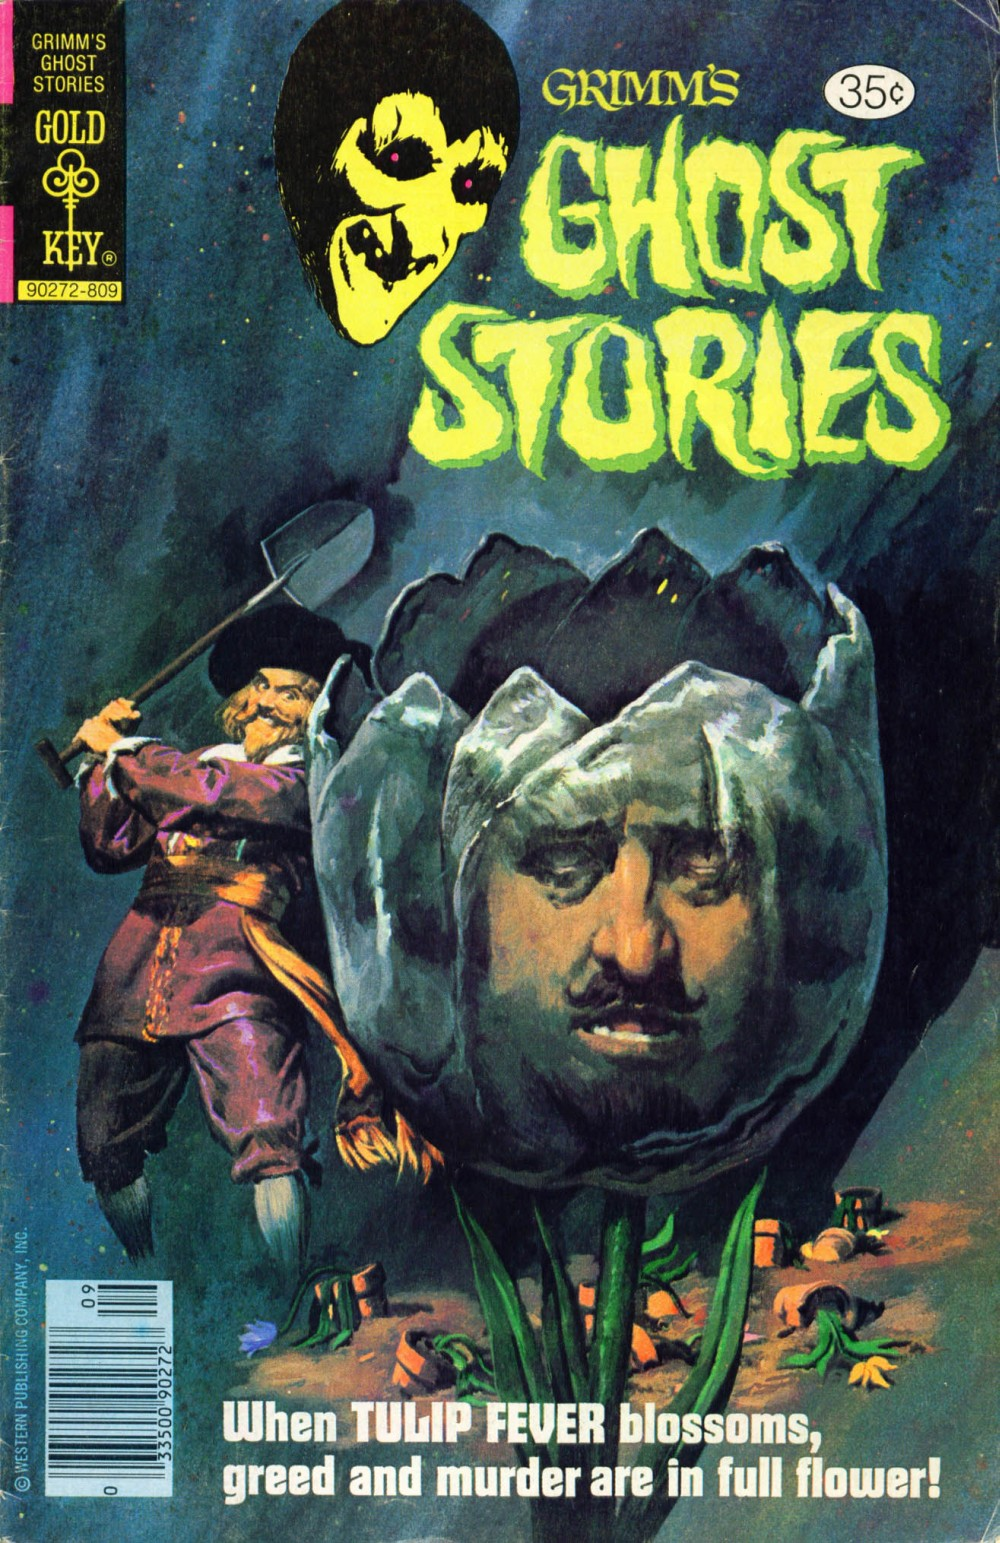 Grimms Ghost Stories [Gold Key] V1 0046.jpg